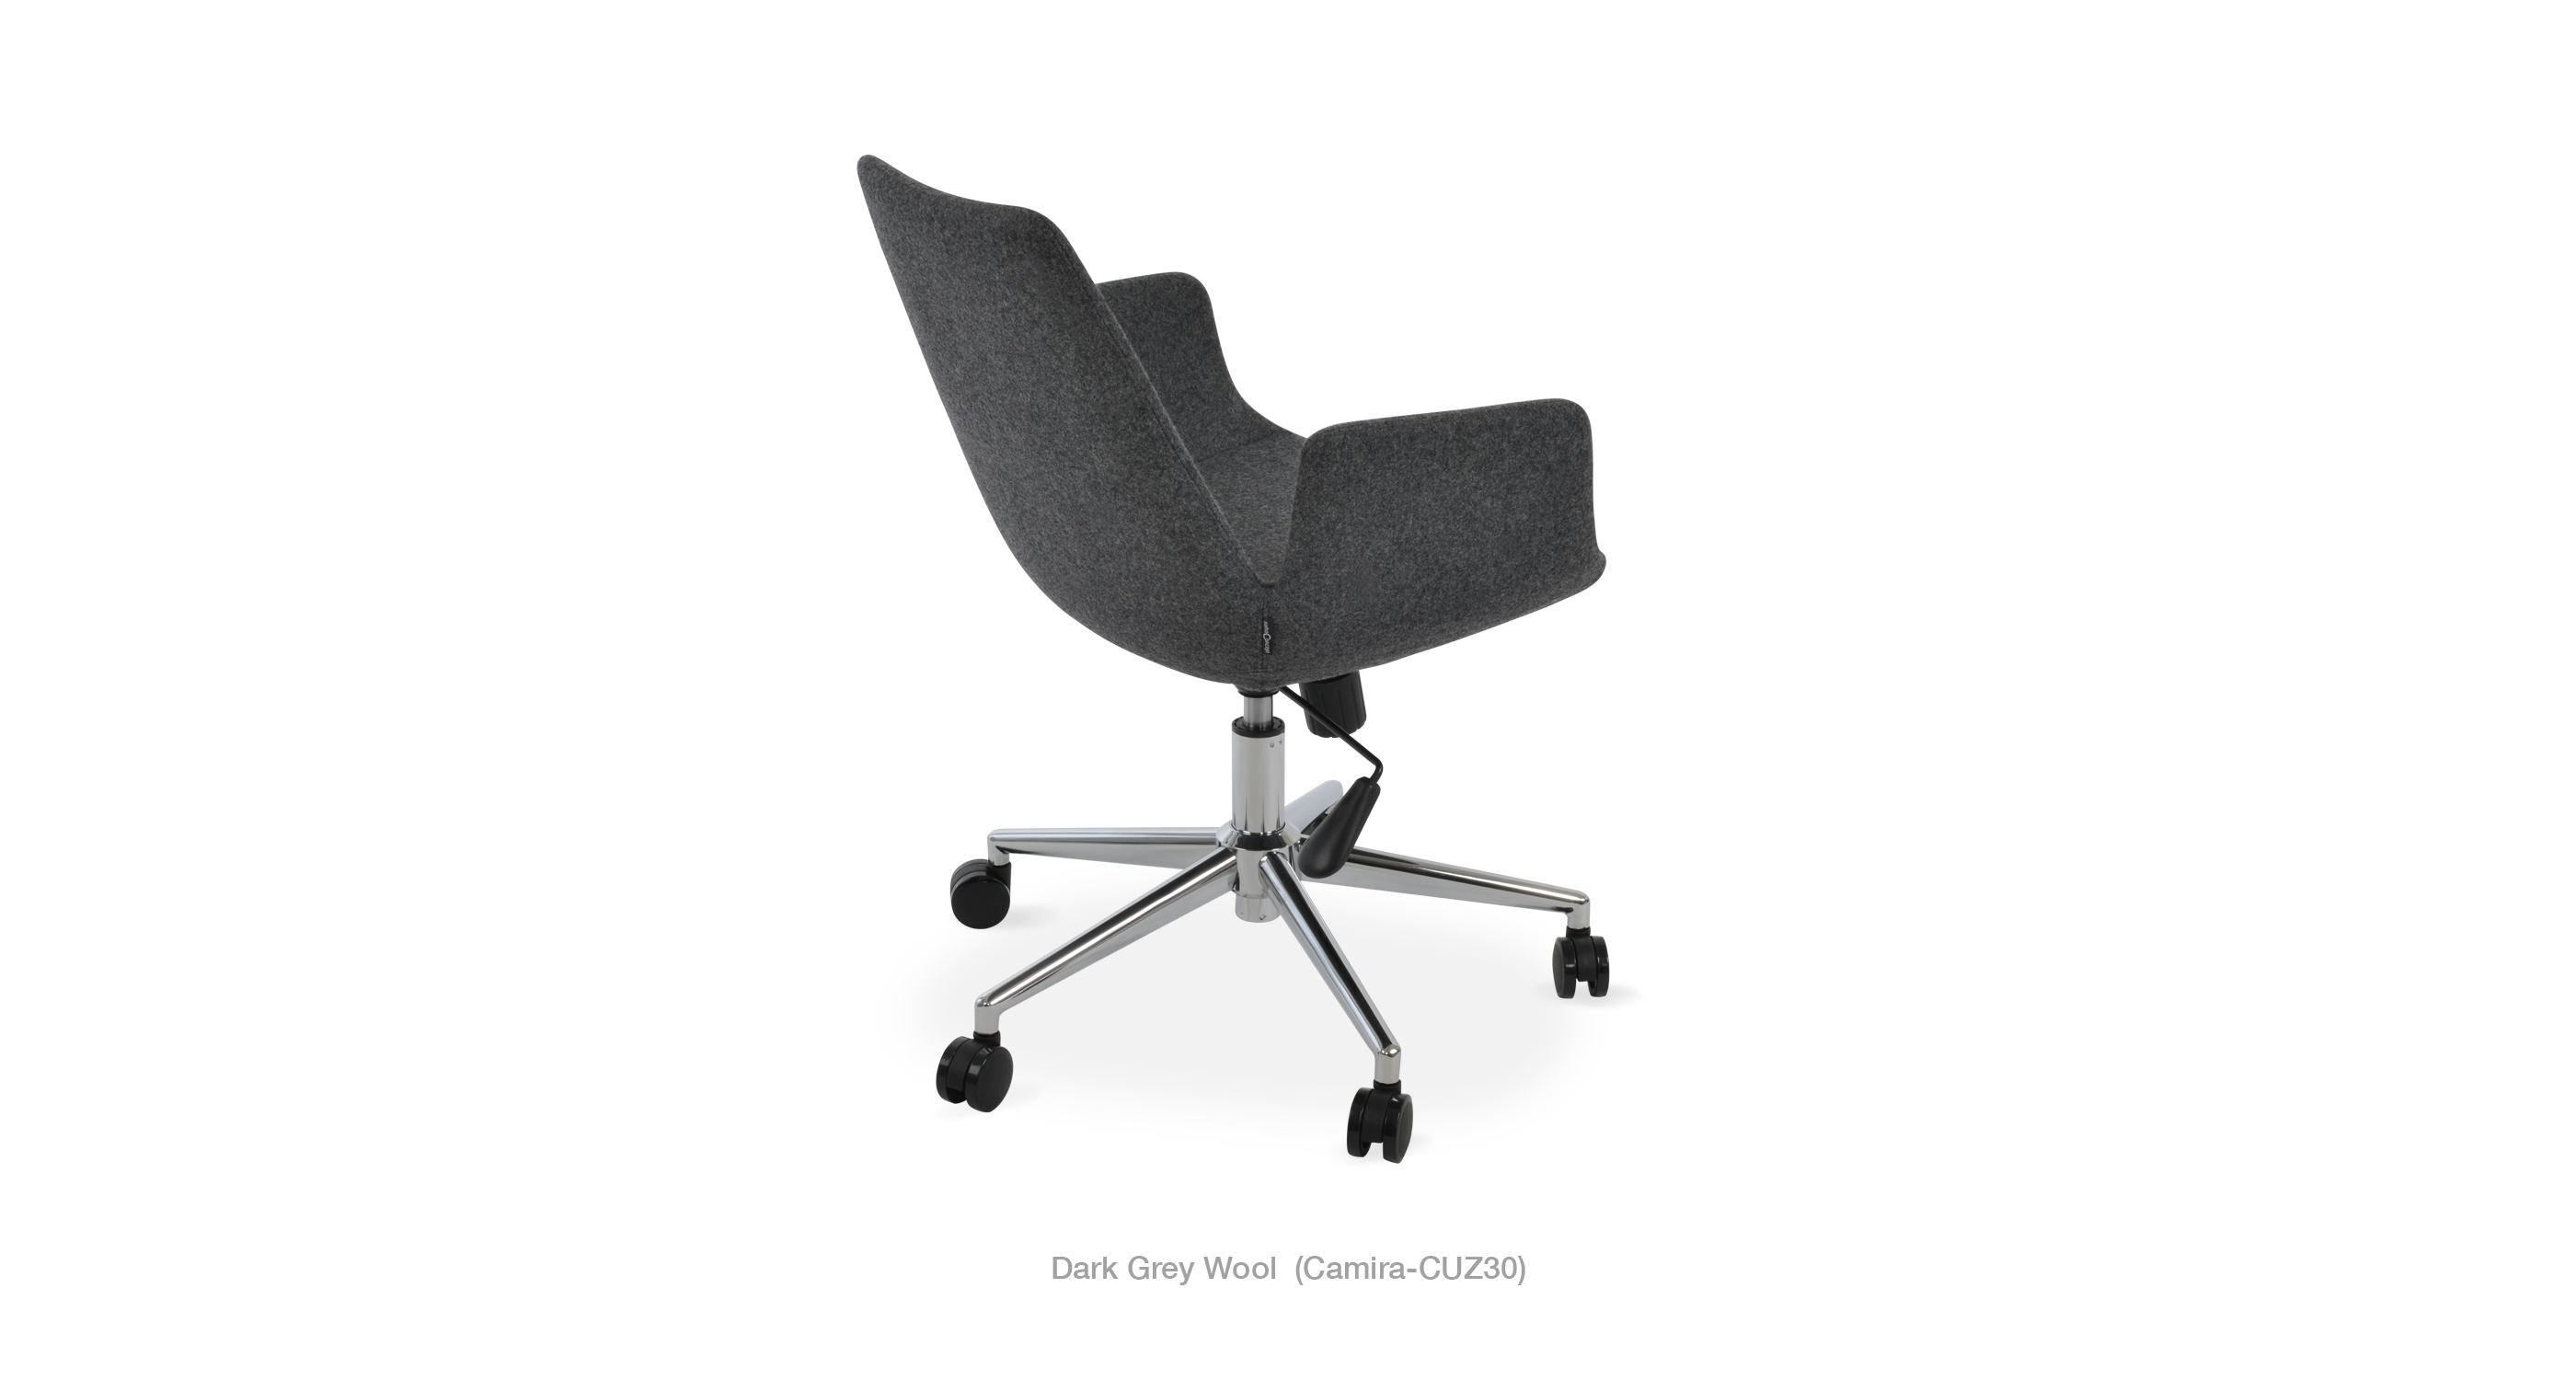 2020 03 15 Eiffel Arm Office Dark Grey Wool